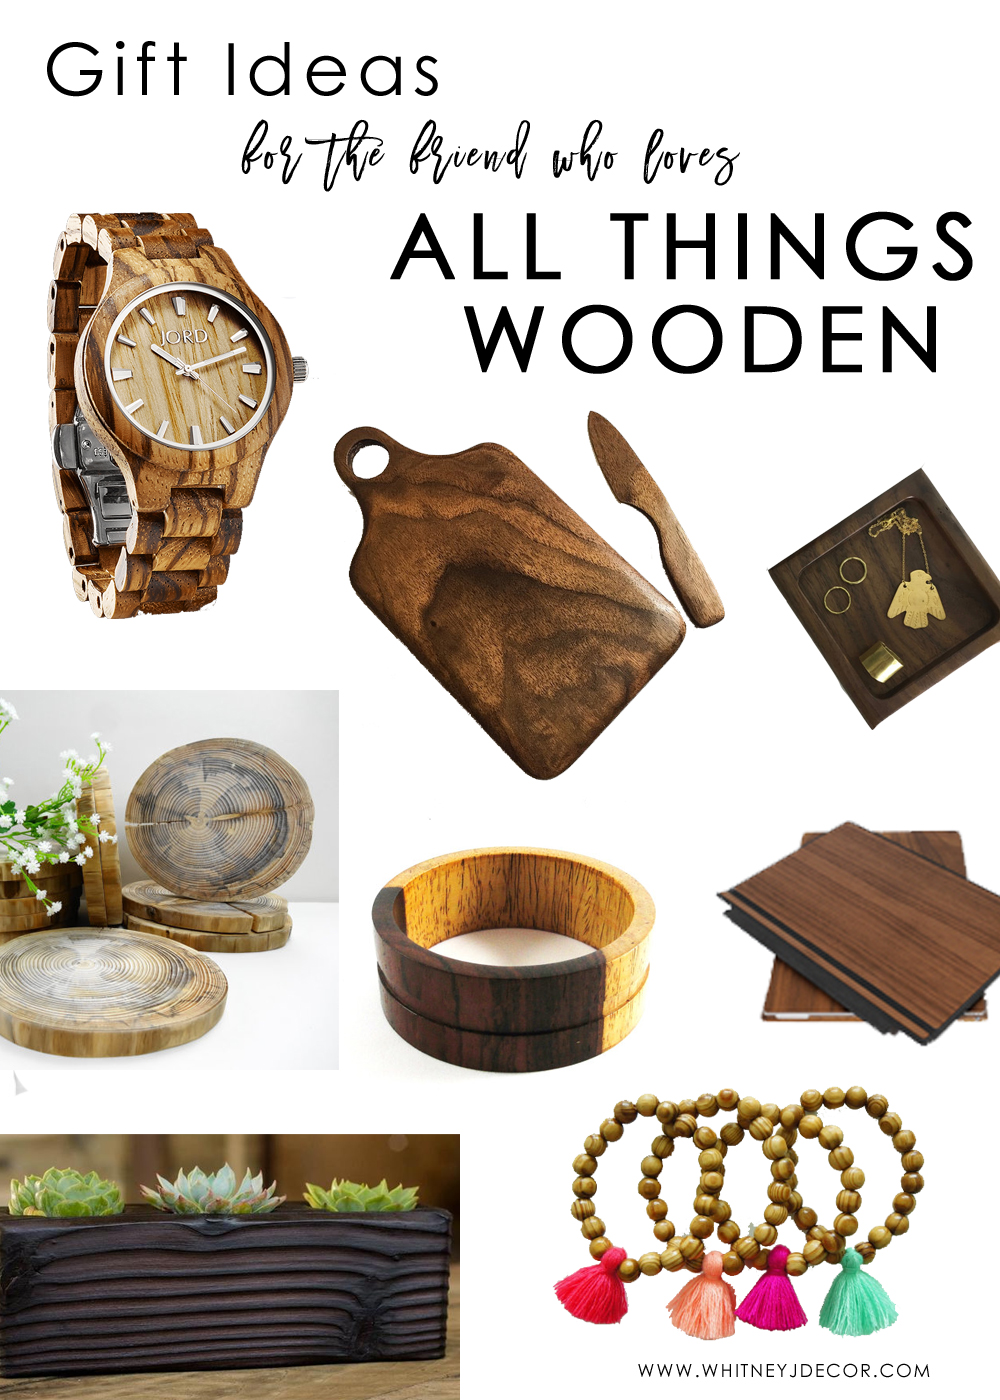 gift ideas for the friend who loves all things wooden | wooden gifts | wooden home decor | wood home decor | wooden fashion | wood fashion gifts